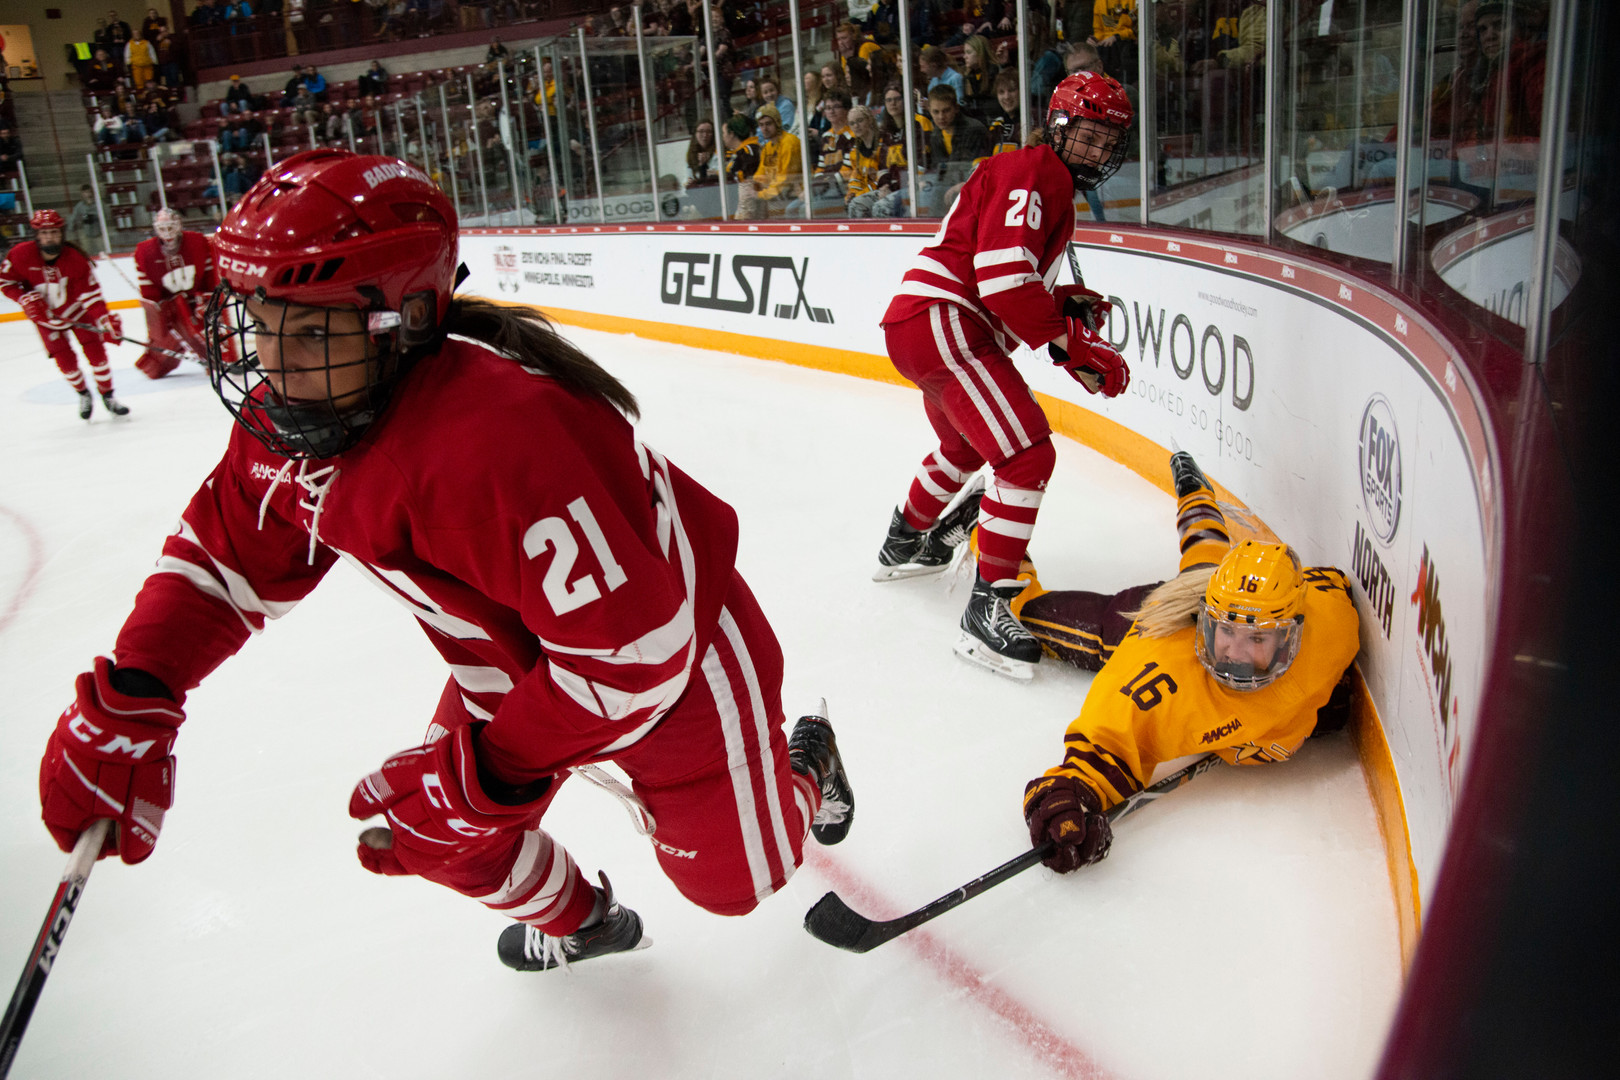 Forward Amy Potomak dives for the puck at Ridder Arena on Sunday, March 10, 2019 Wisconsin beat the Gophers 3-1 to win the 2019 WCHA Final Faceoff.